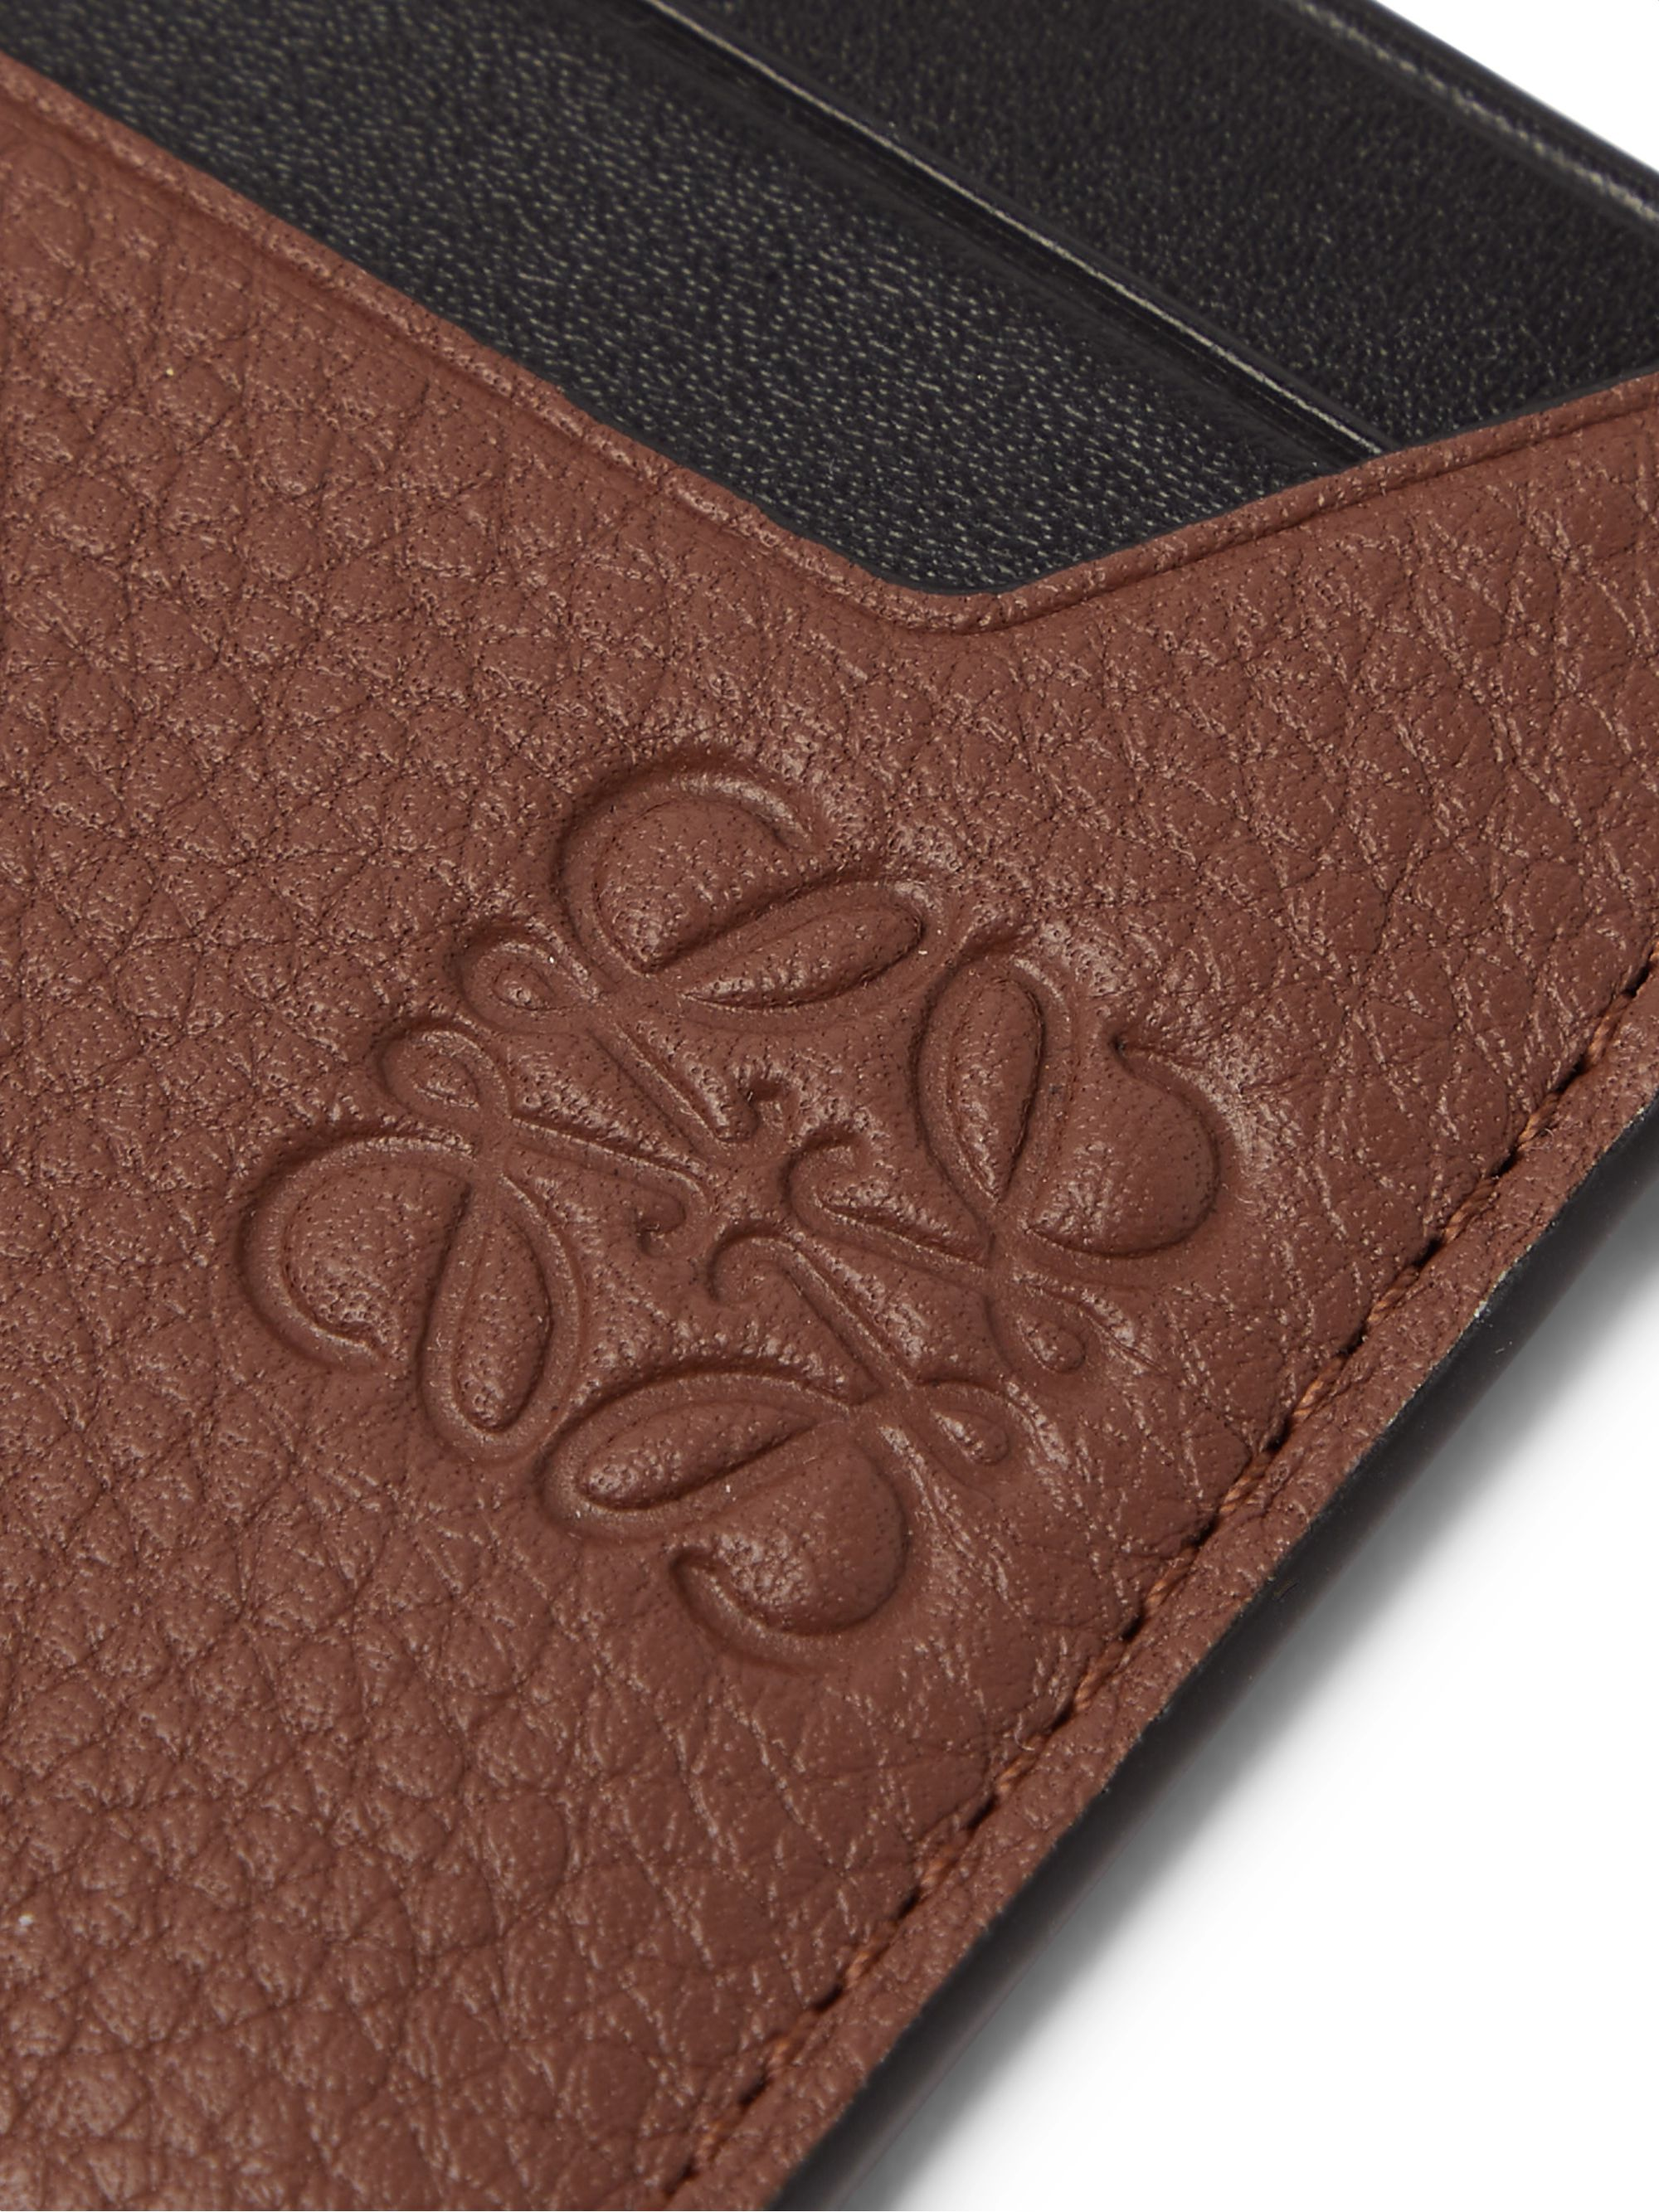 LOEWE Logo-Debossed Smooth and Full-Grain Leather Cardholder